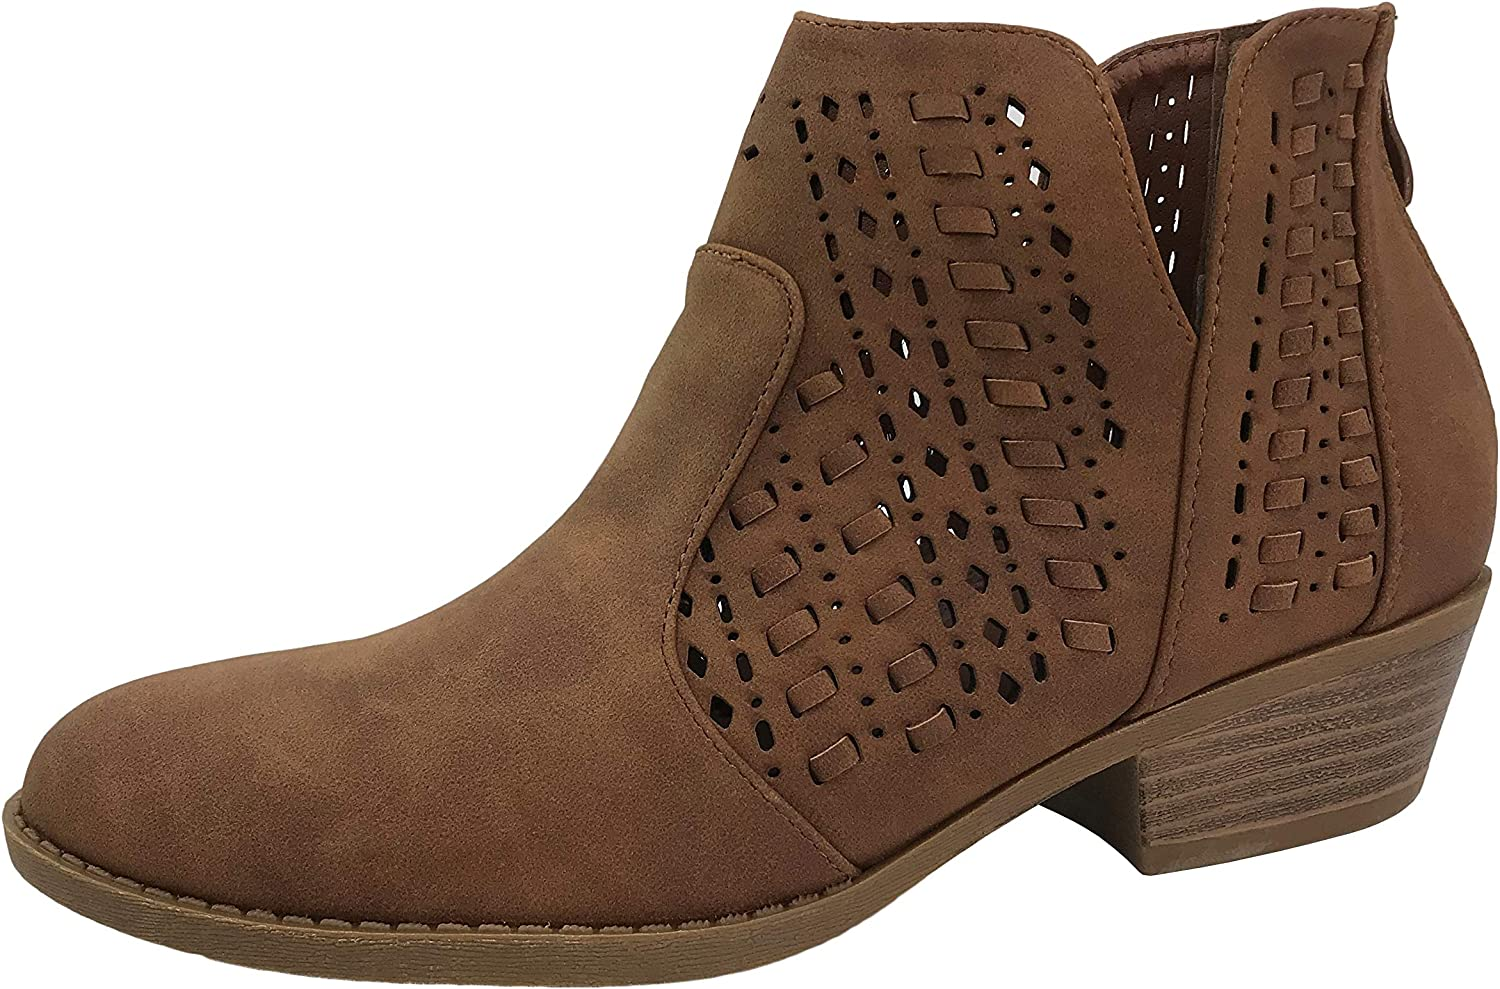 Soda Chance Perforated Cut Out Stacked Block Heel Ankle Booties Light Brown Dist